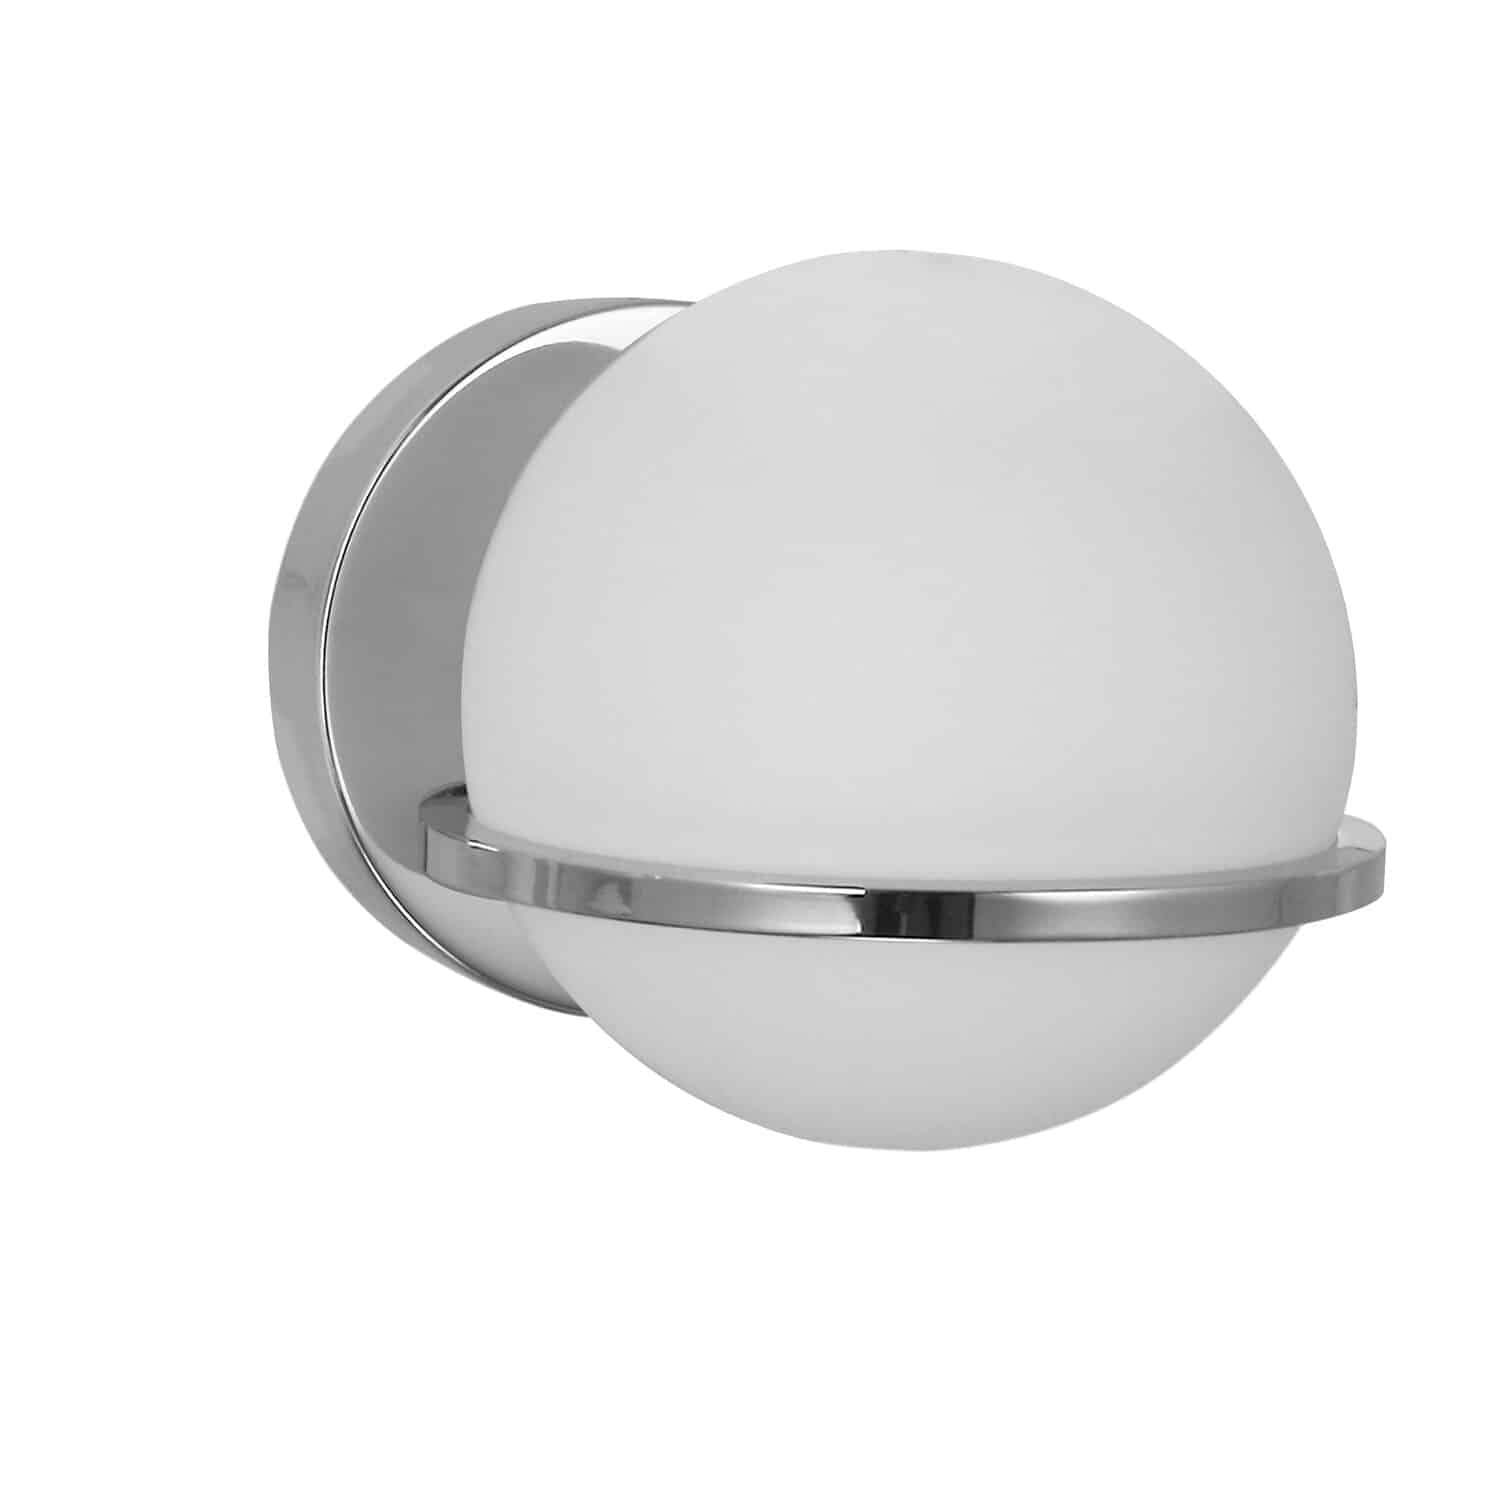 1 Light Halogen Wall Sconce, Polished Chrome with White Glass